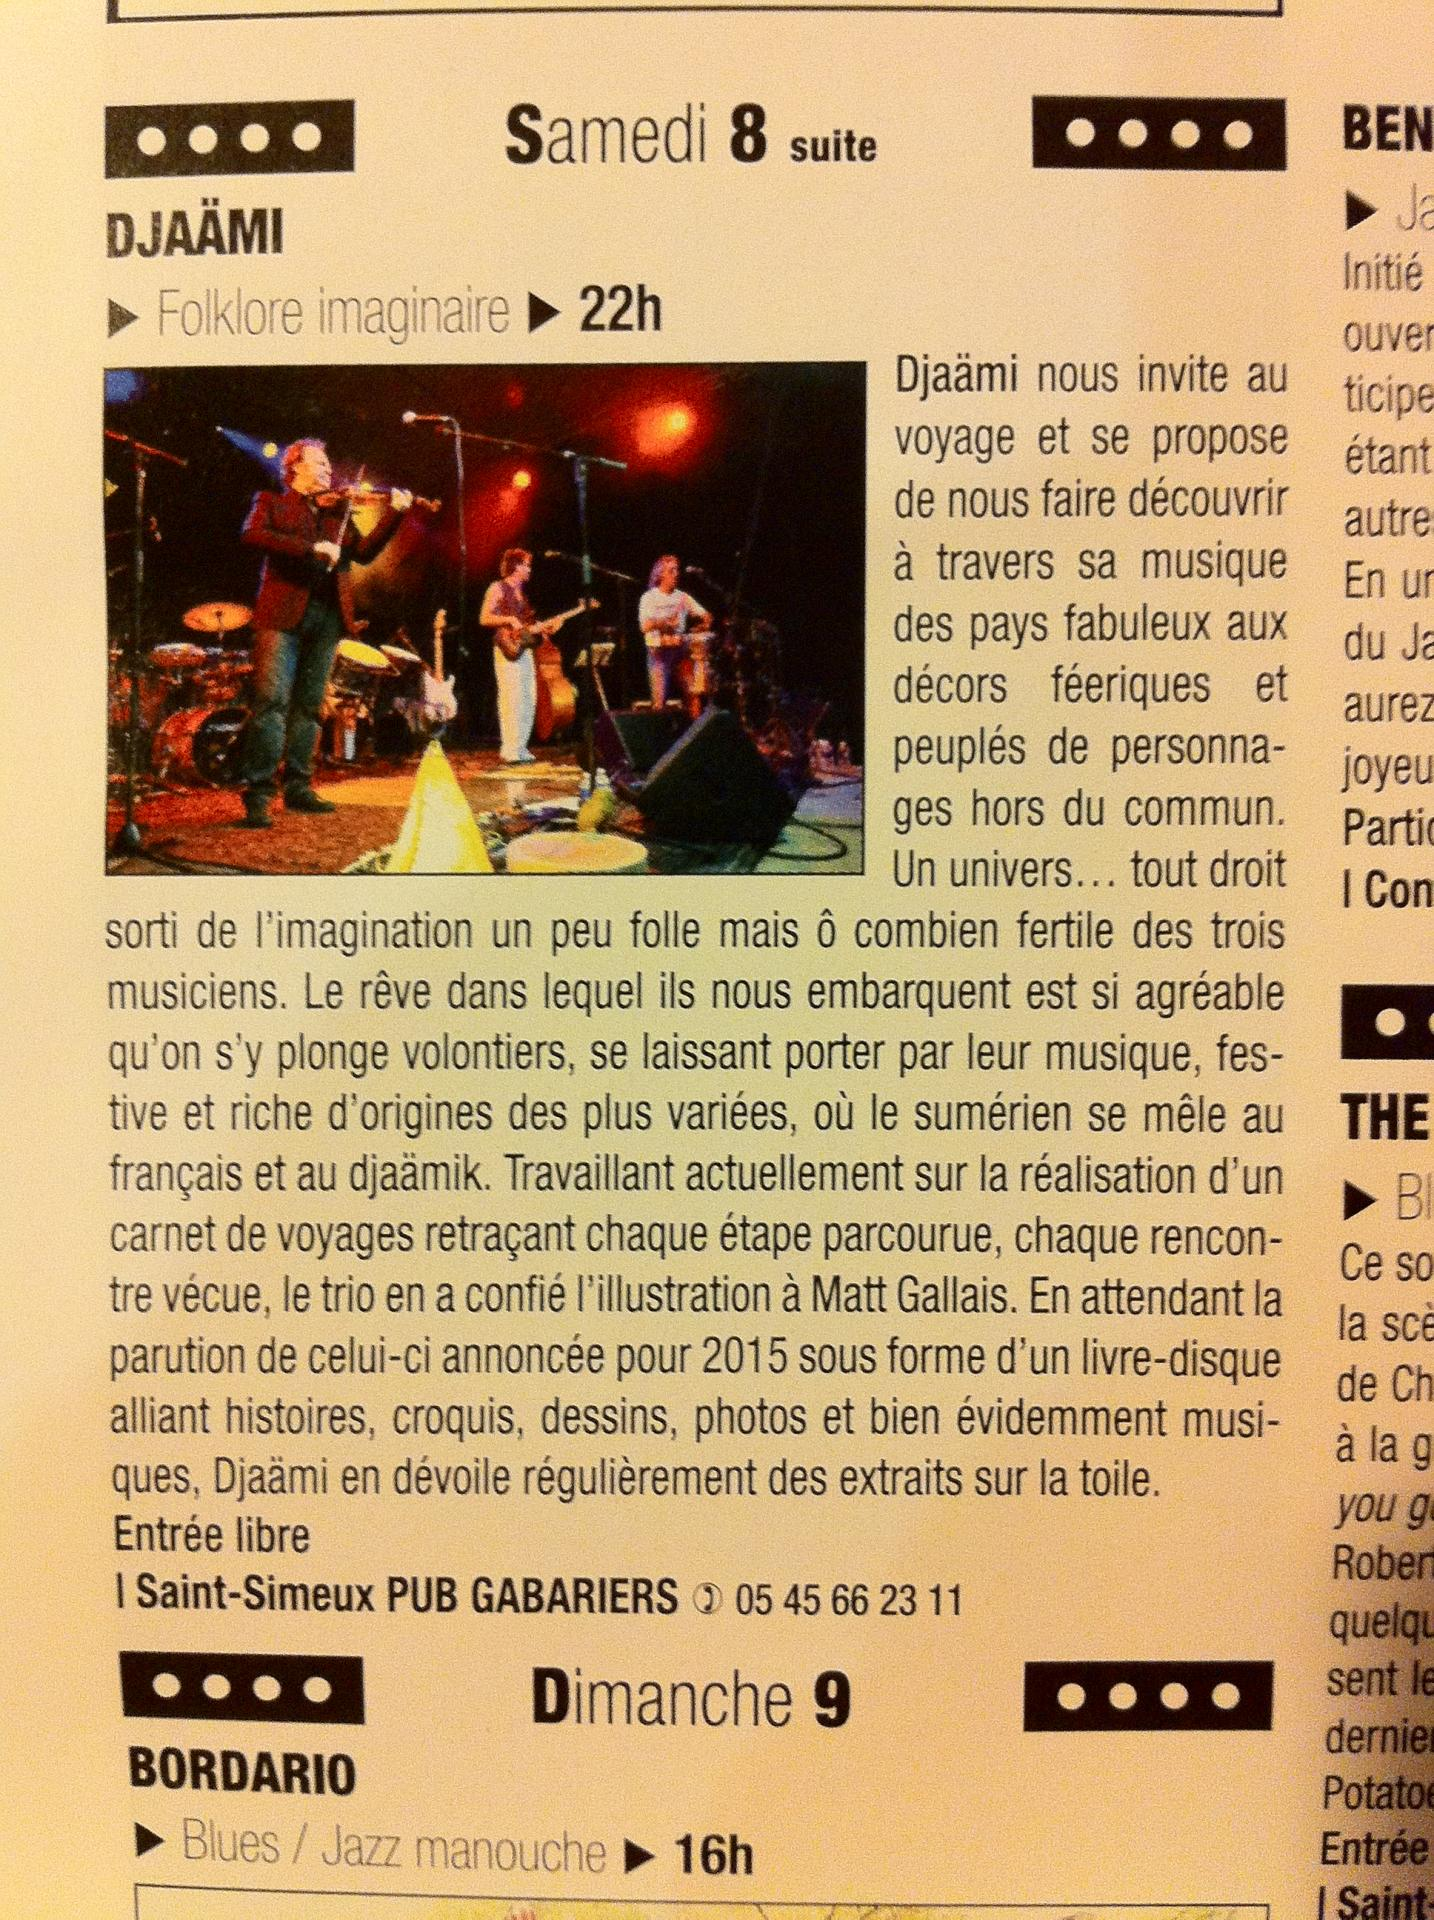 annonce concert gabariers 08/11/2014